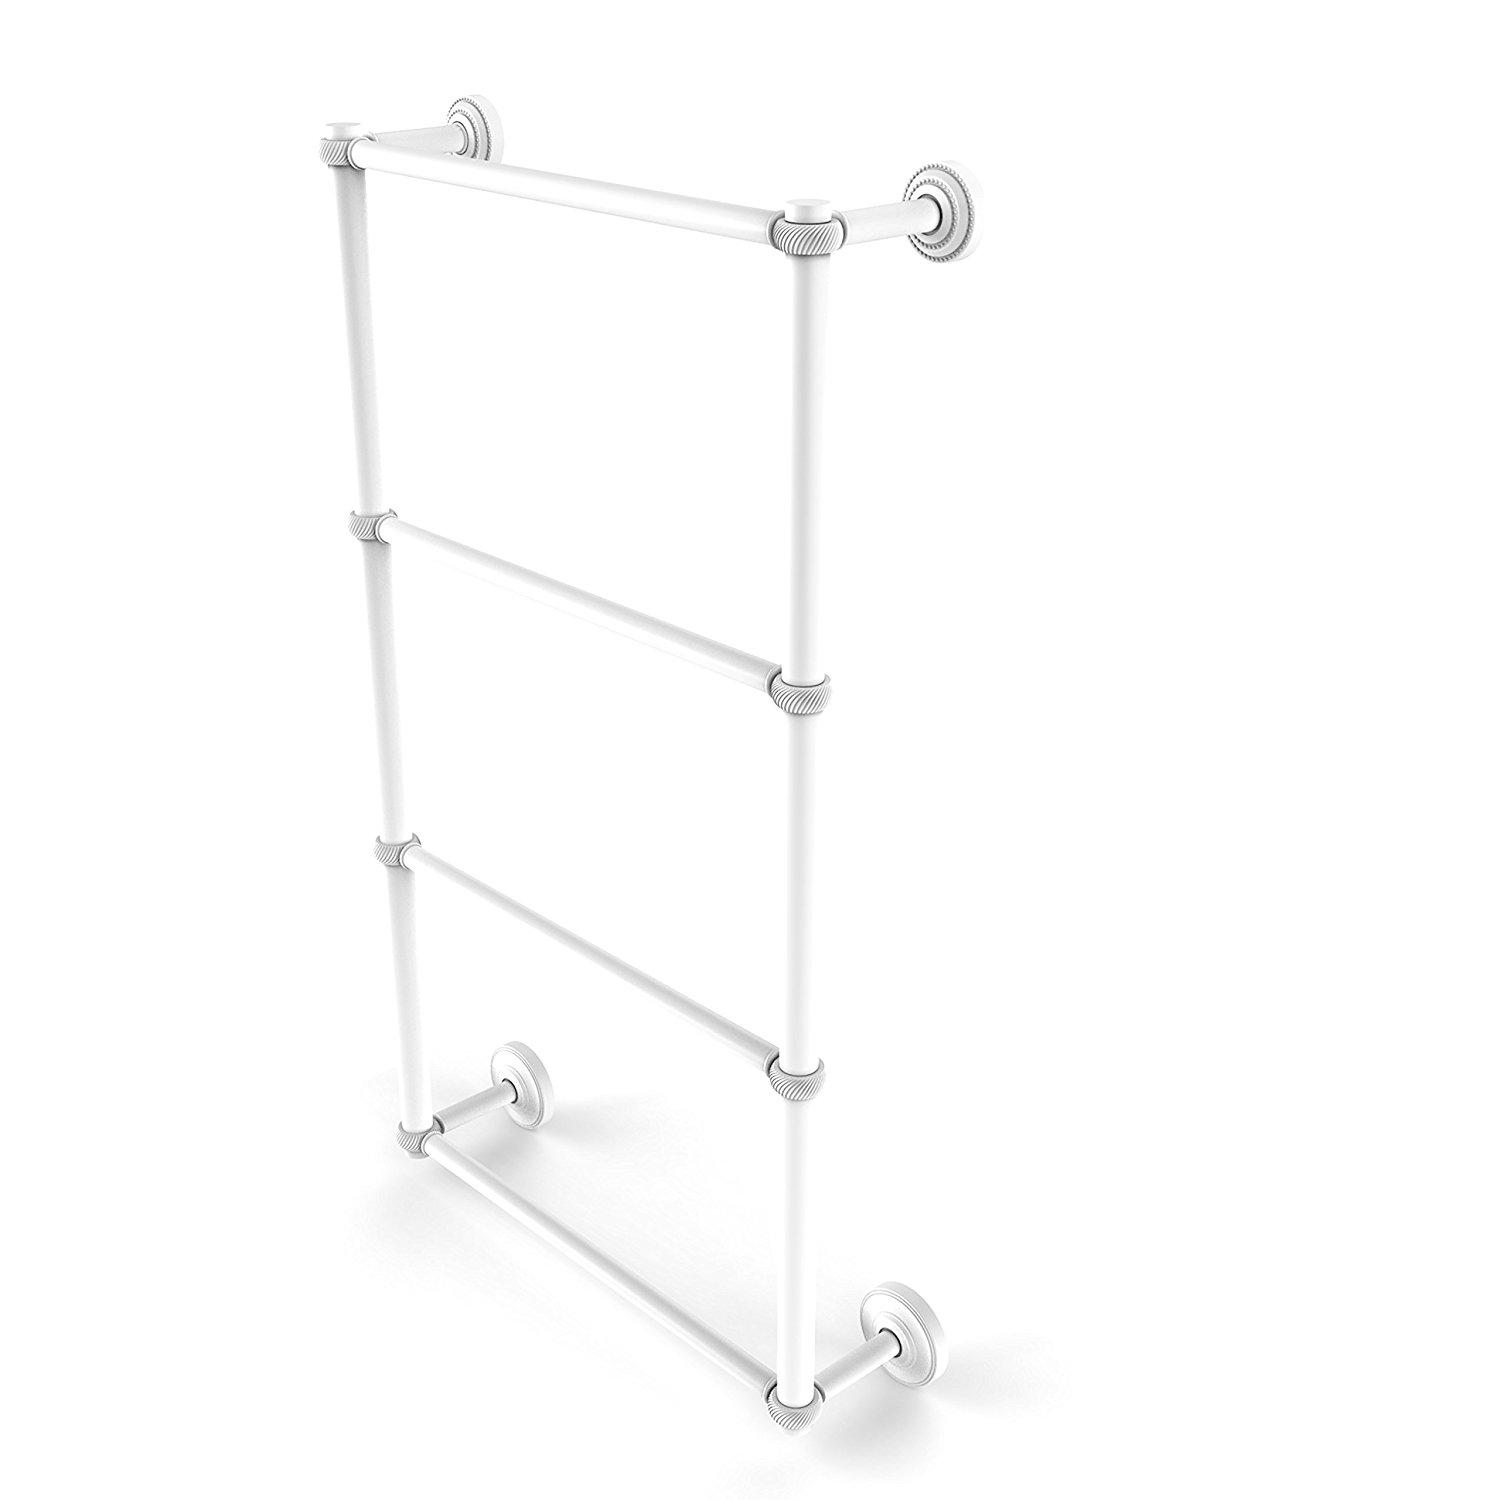 Allied Brass DT-28T-24-WHM Dottingham Collection 4 Tier 24 Inch Ladder Towel Bar with Twisted Detail 4